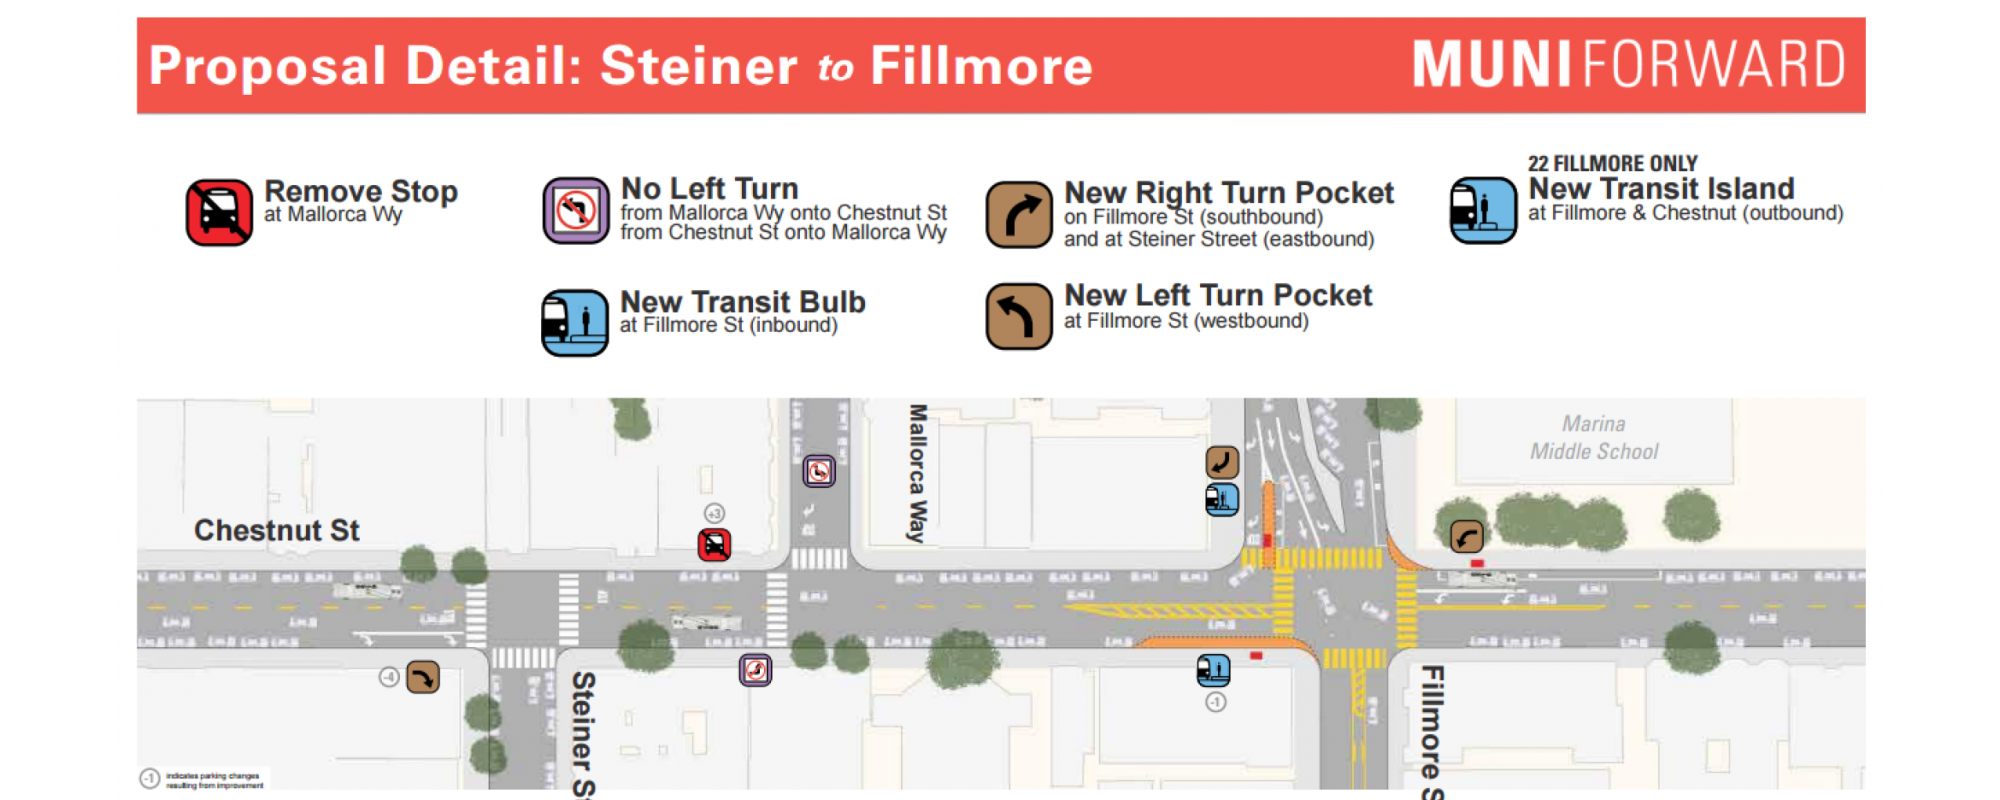 Proposed Detail: Steiner to Fillmore